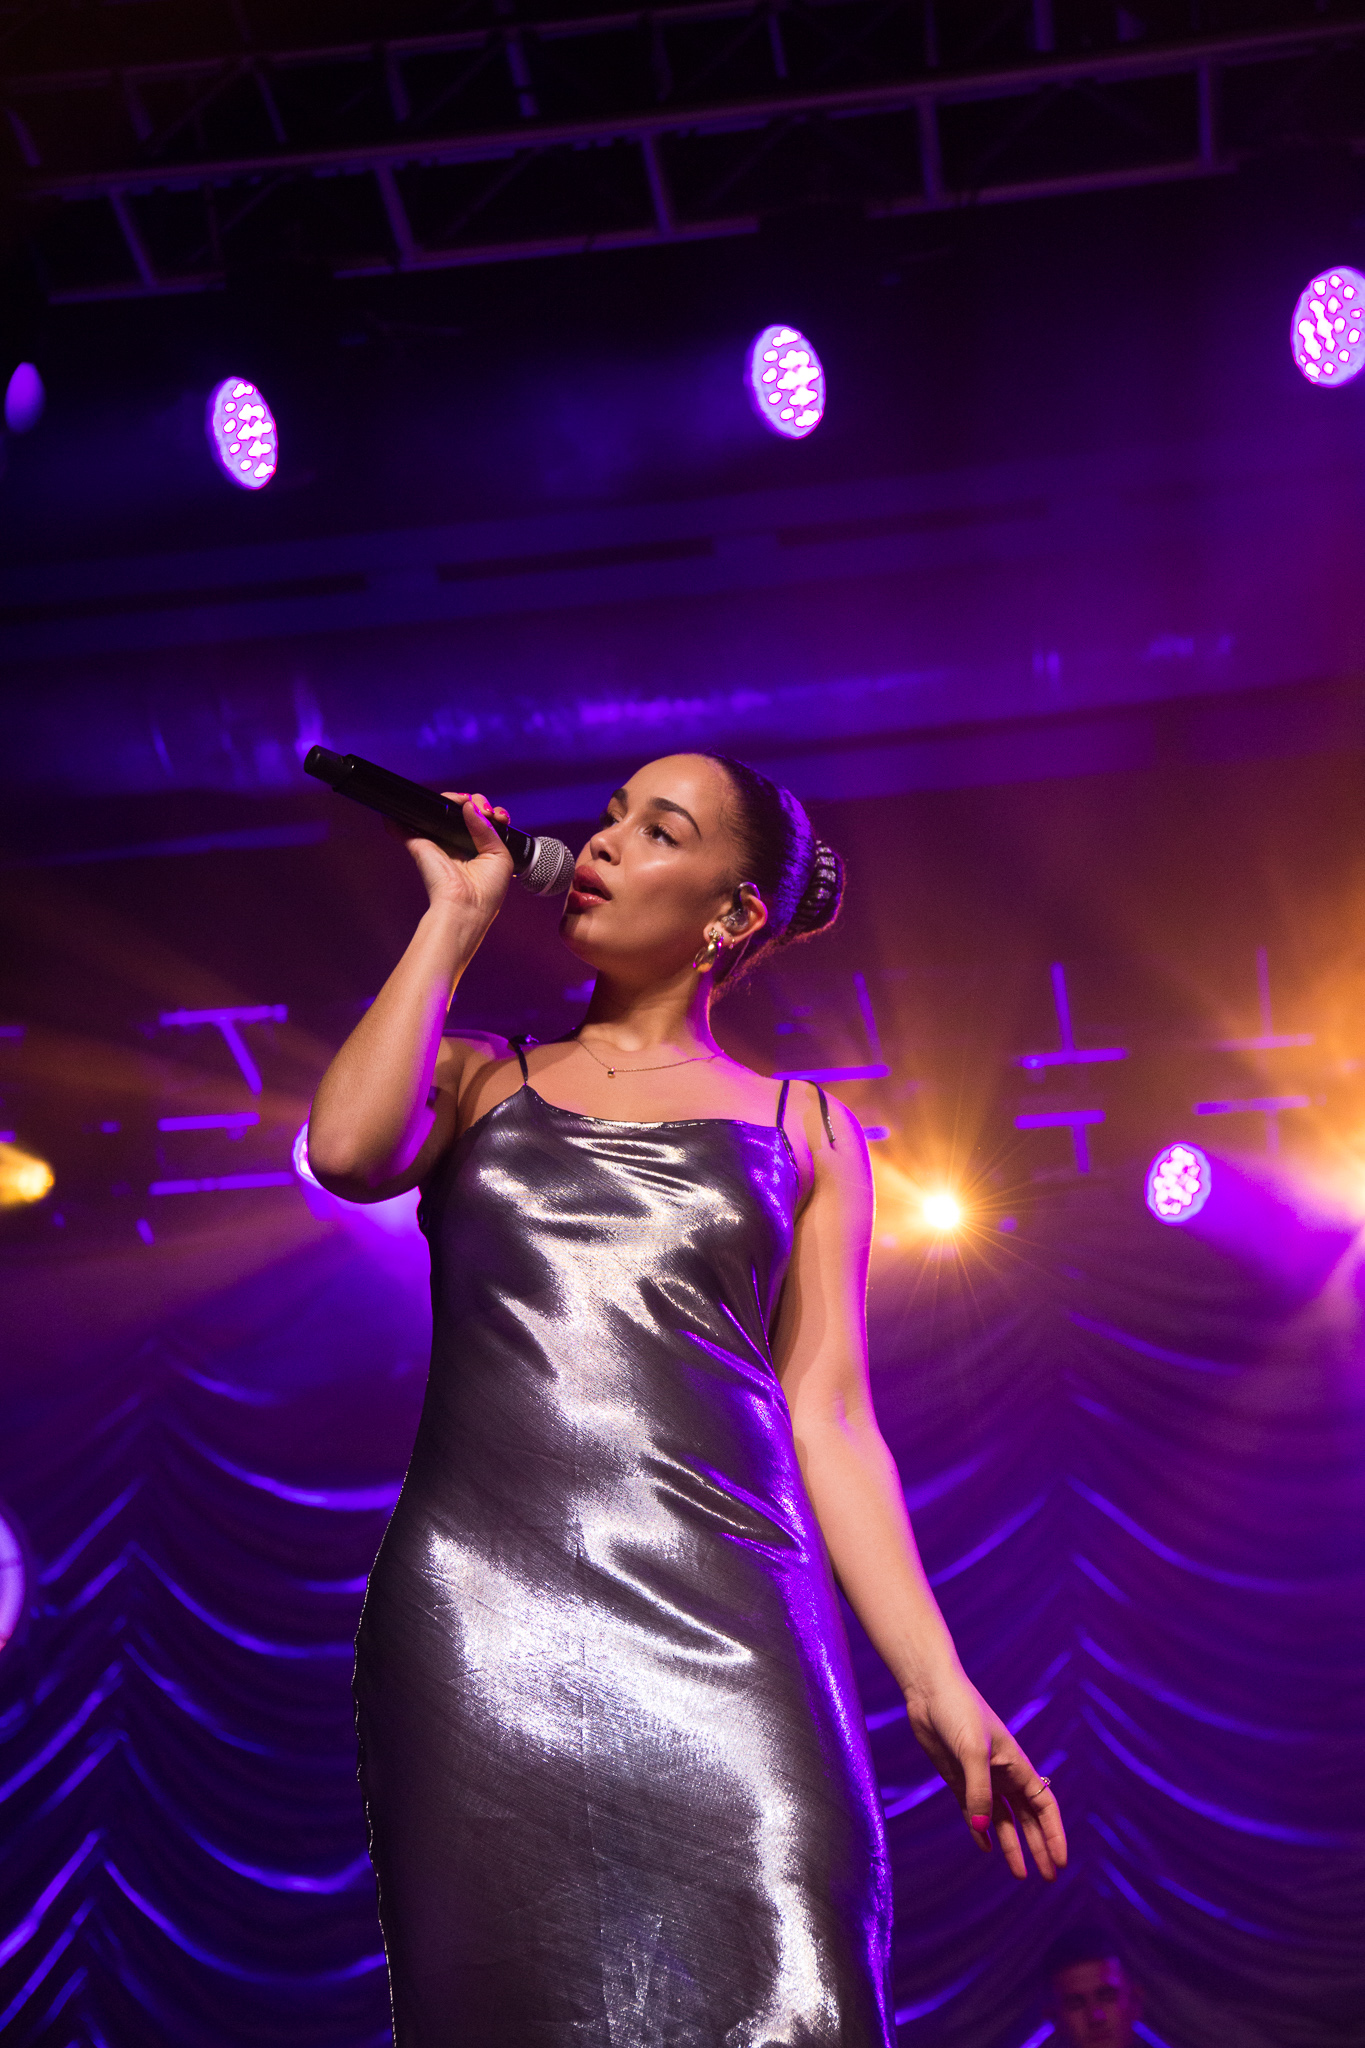 jorja smith in phoenix, arizona in december 2018 - 2